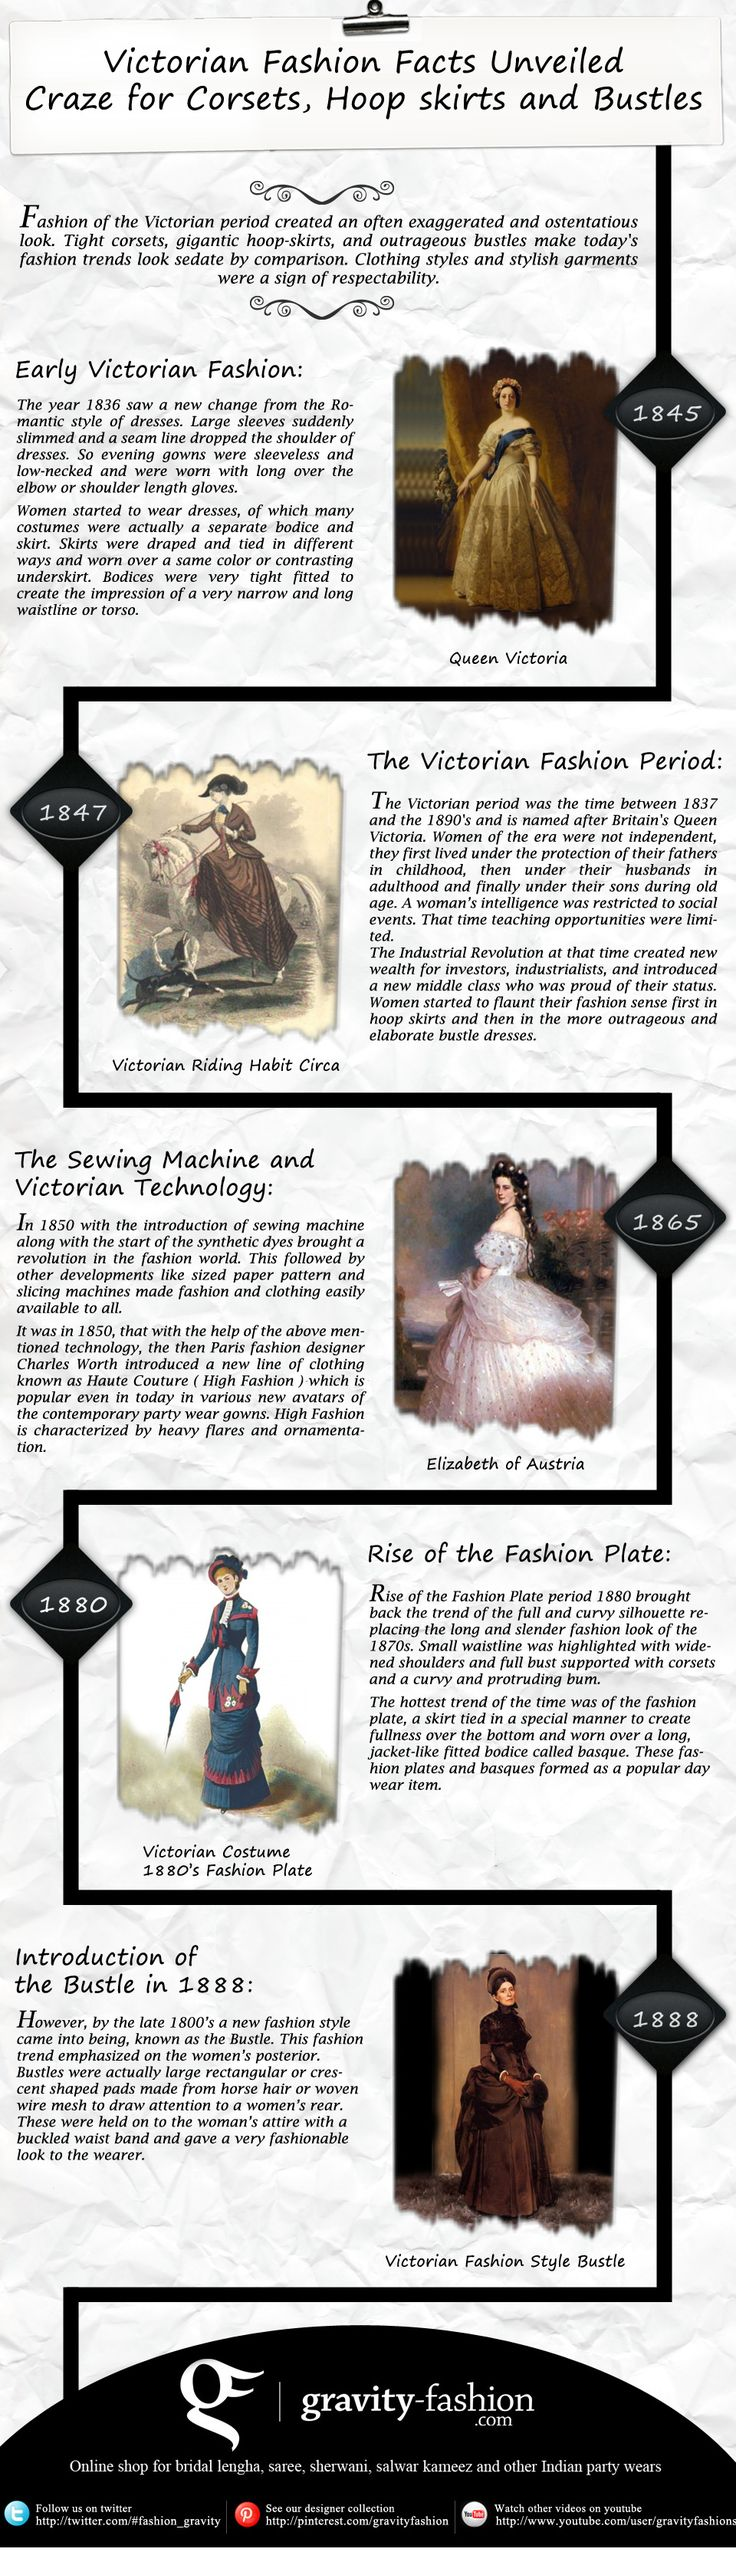 Victorian Fashion Facts Unveiled Craze for Hoop Skirts and Bustles - infographic